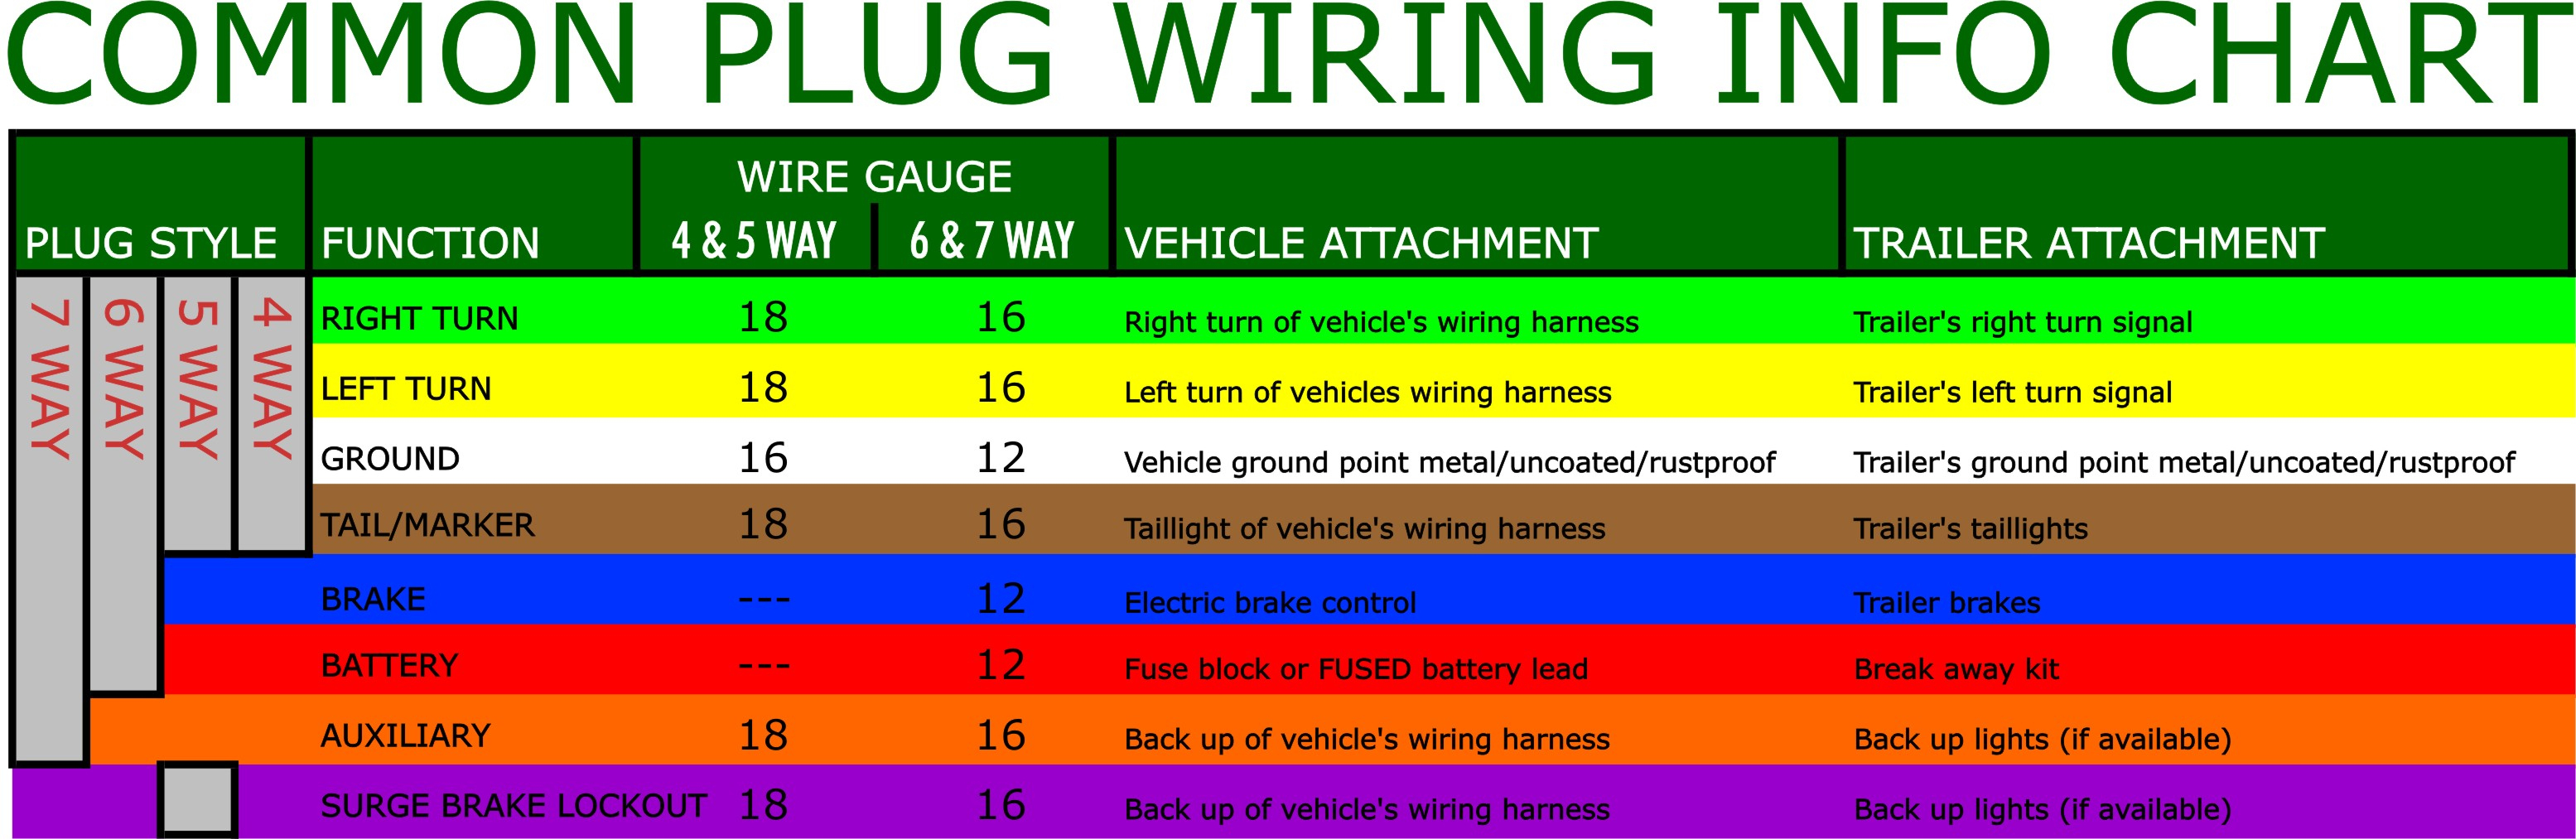 4 Pin Trailer Connector Wiring Harness | Wiring Diagram - Wiring Harness Trailer Diagram